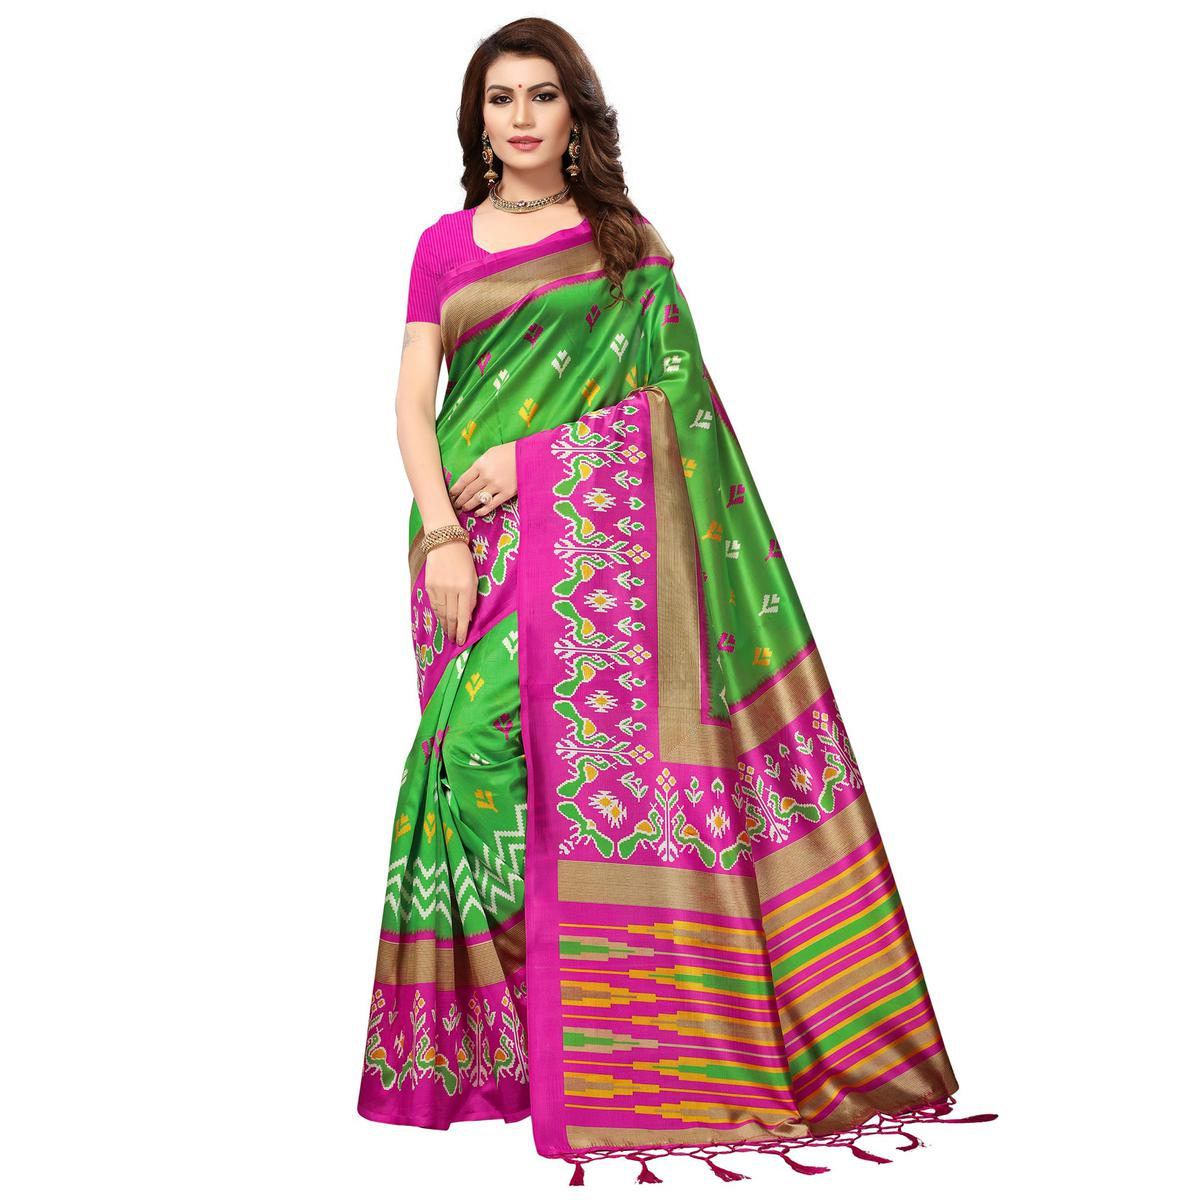 Impressive Green-Pink Colored Festive Wear Printed Mysore Art Silk Saree